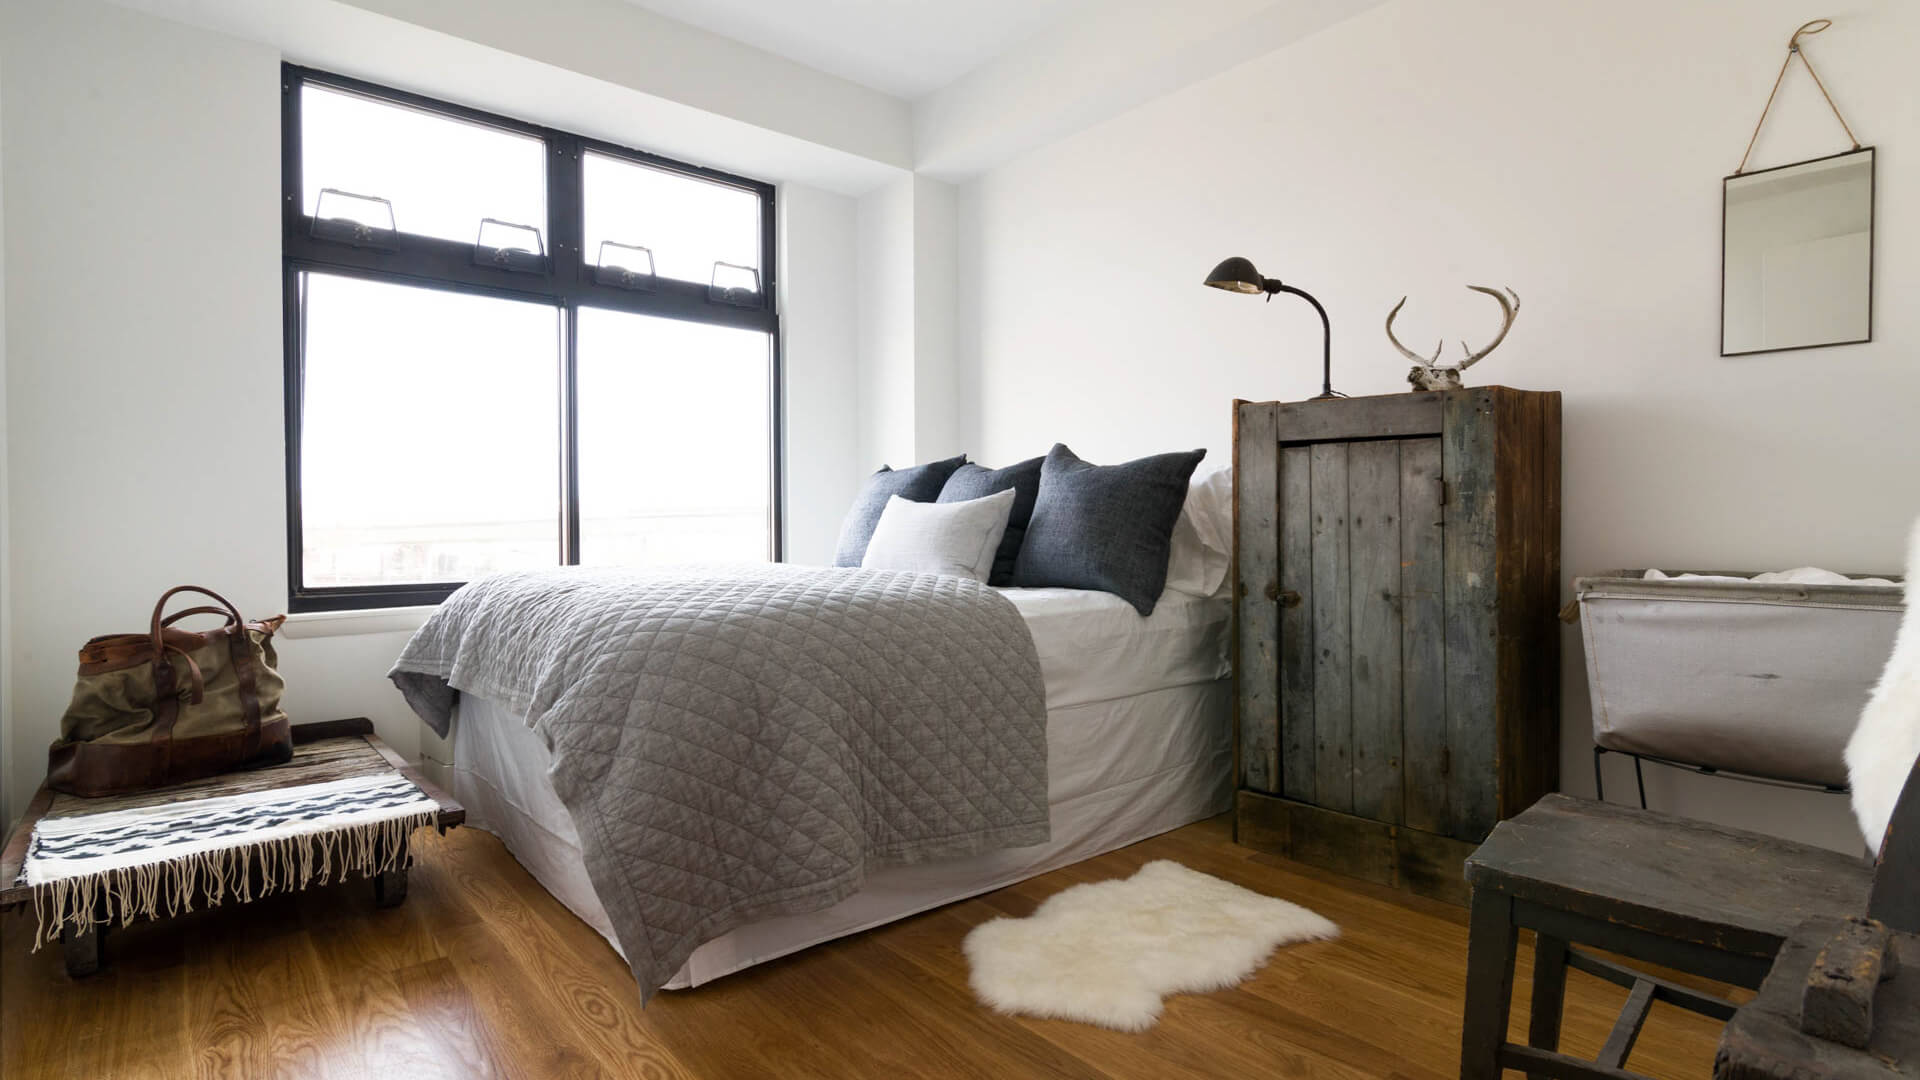 affordable apartments at bushwick 39 s st mark 39 s church debut from 822 month curbed ny. Black Bedroom Furniture Sets. Home Design Ideas